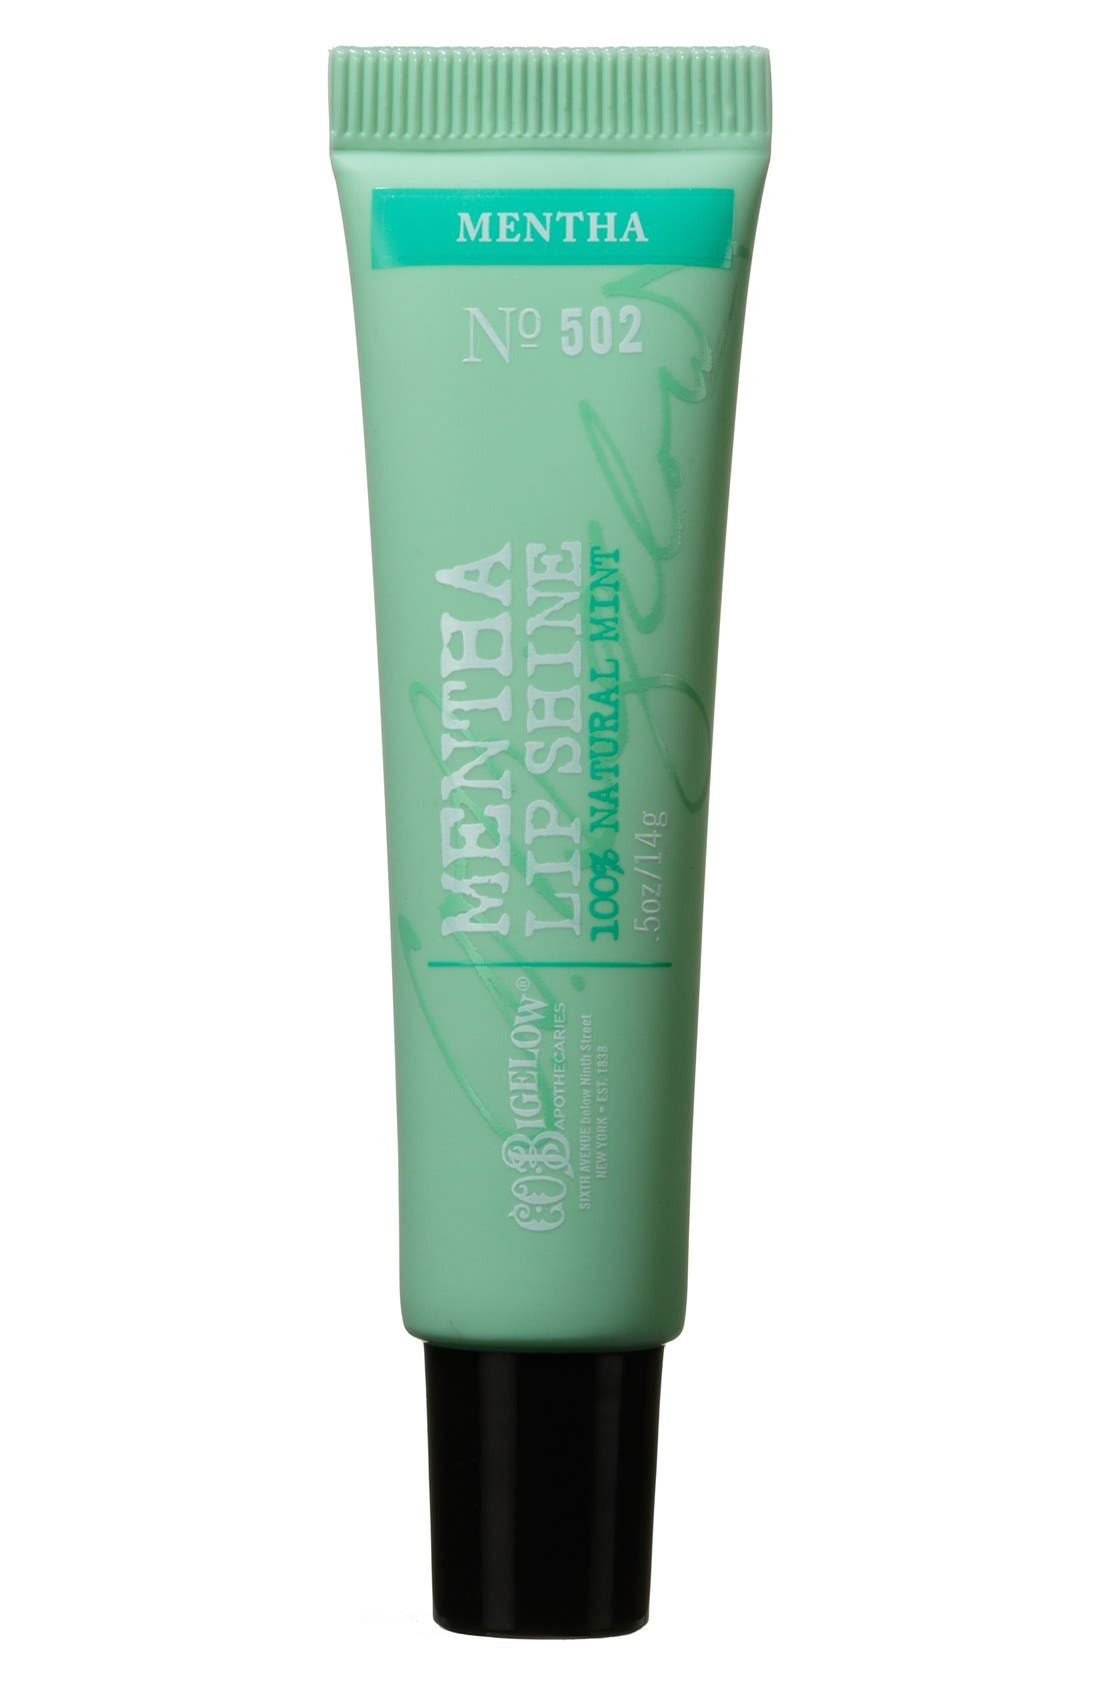 C.O. Bigelow® Mentha Lip Shine